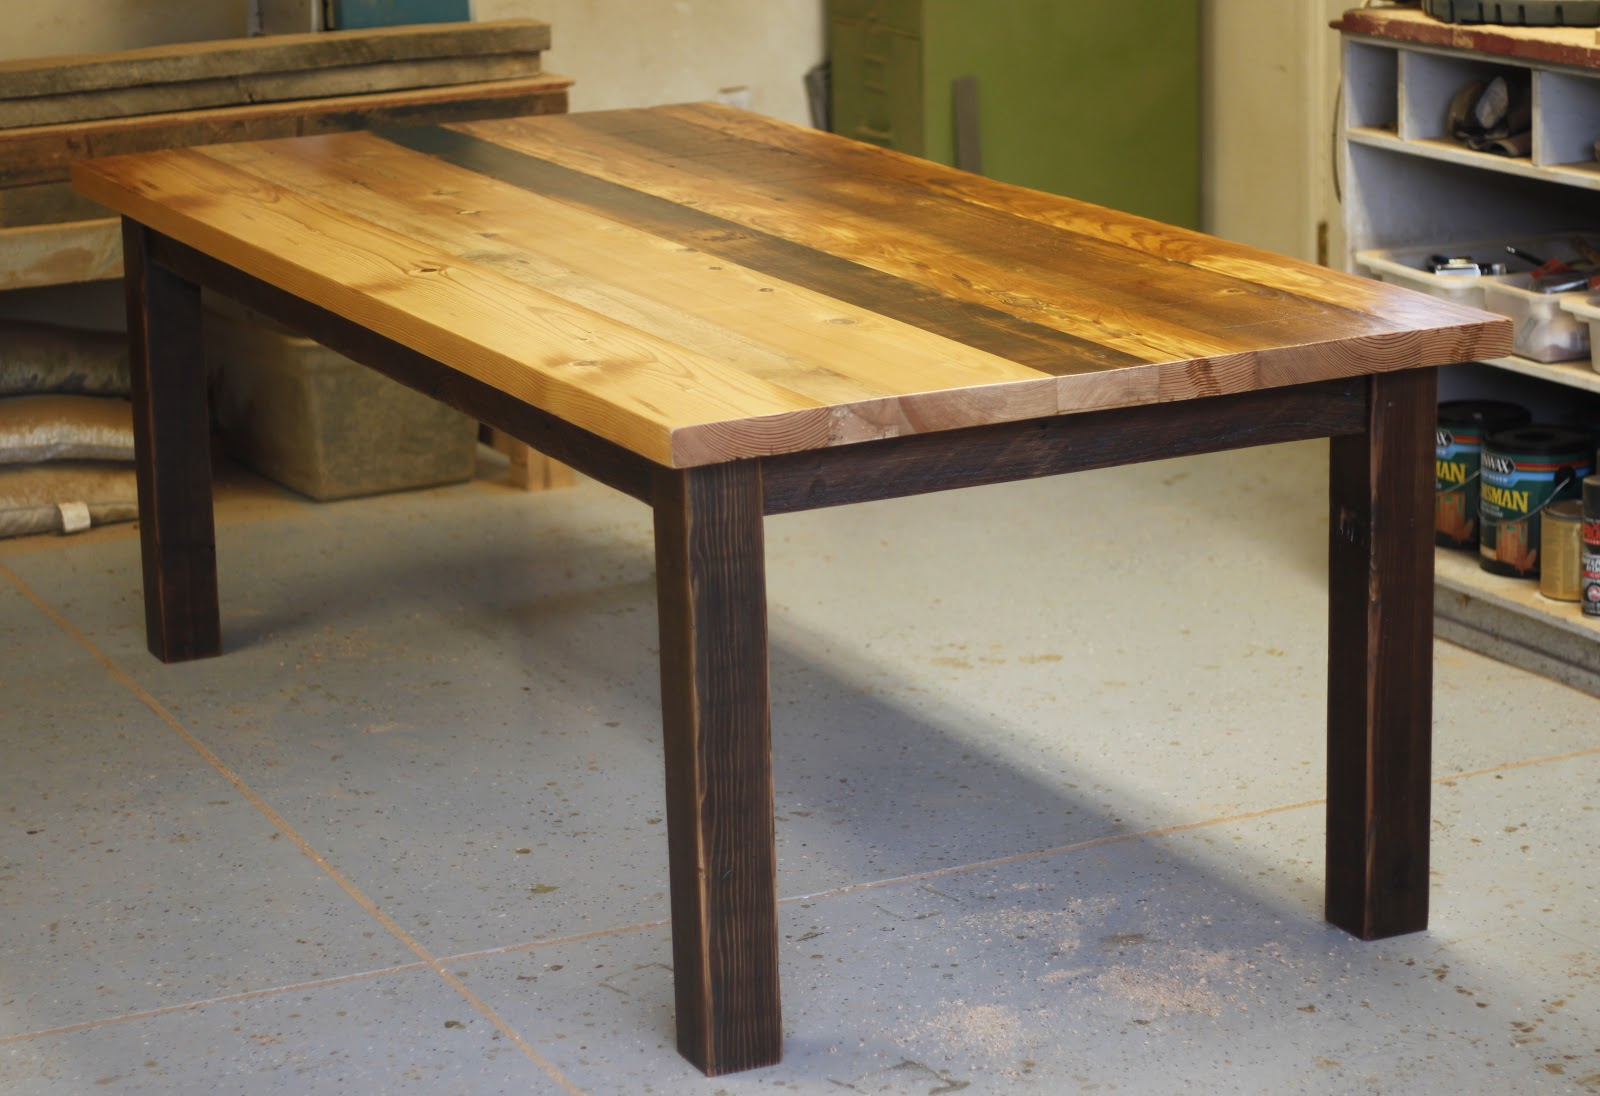 ... | Reclaimed Wood Furniture: Patchwork Dining Table w/ Wood Base